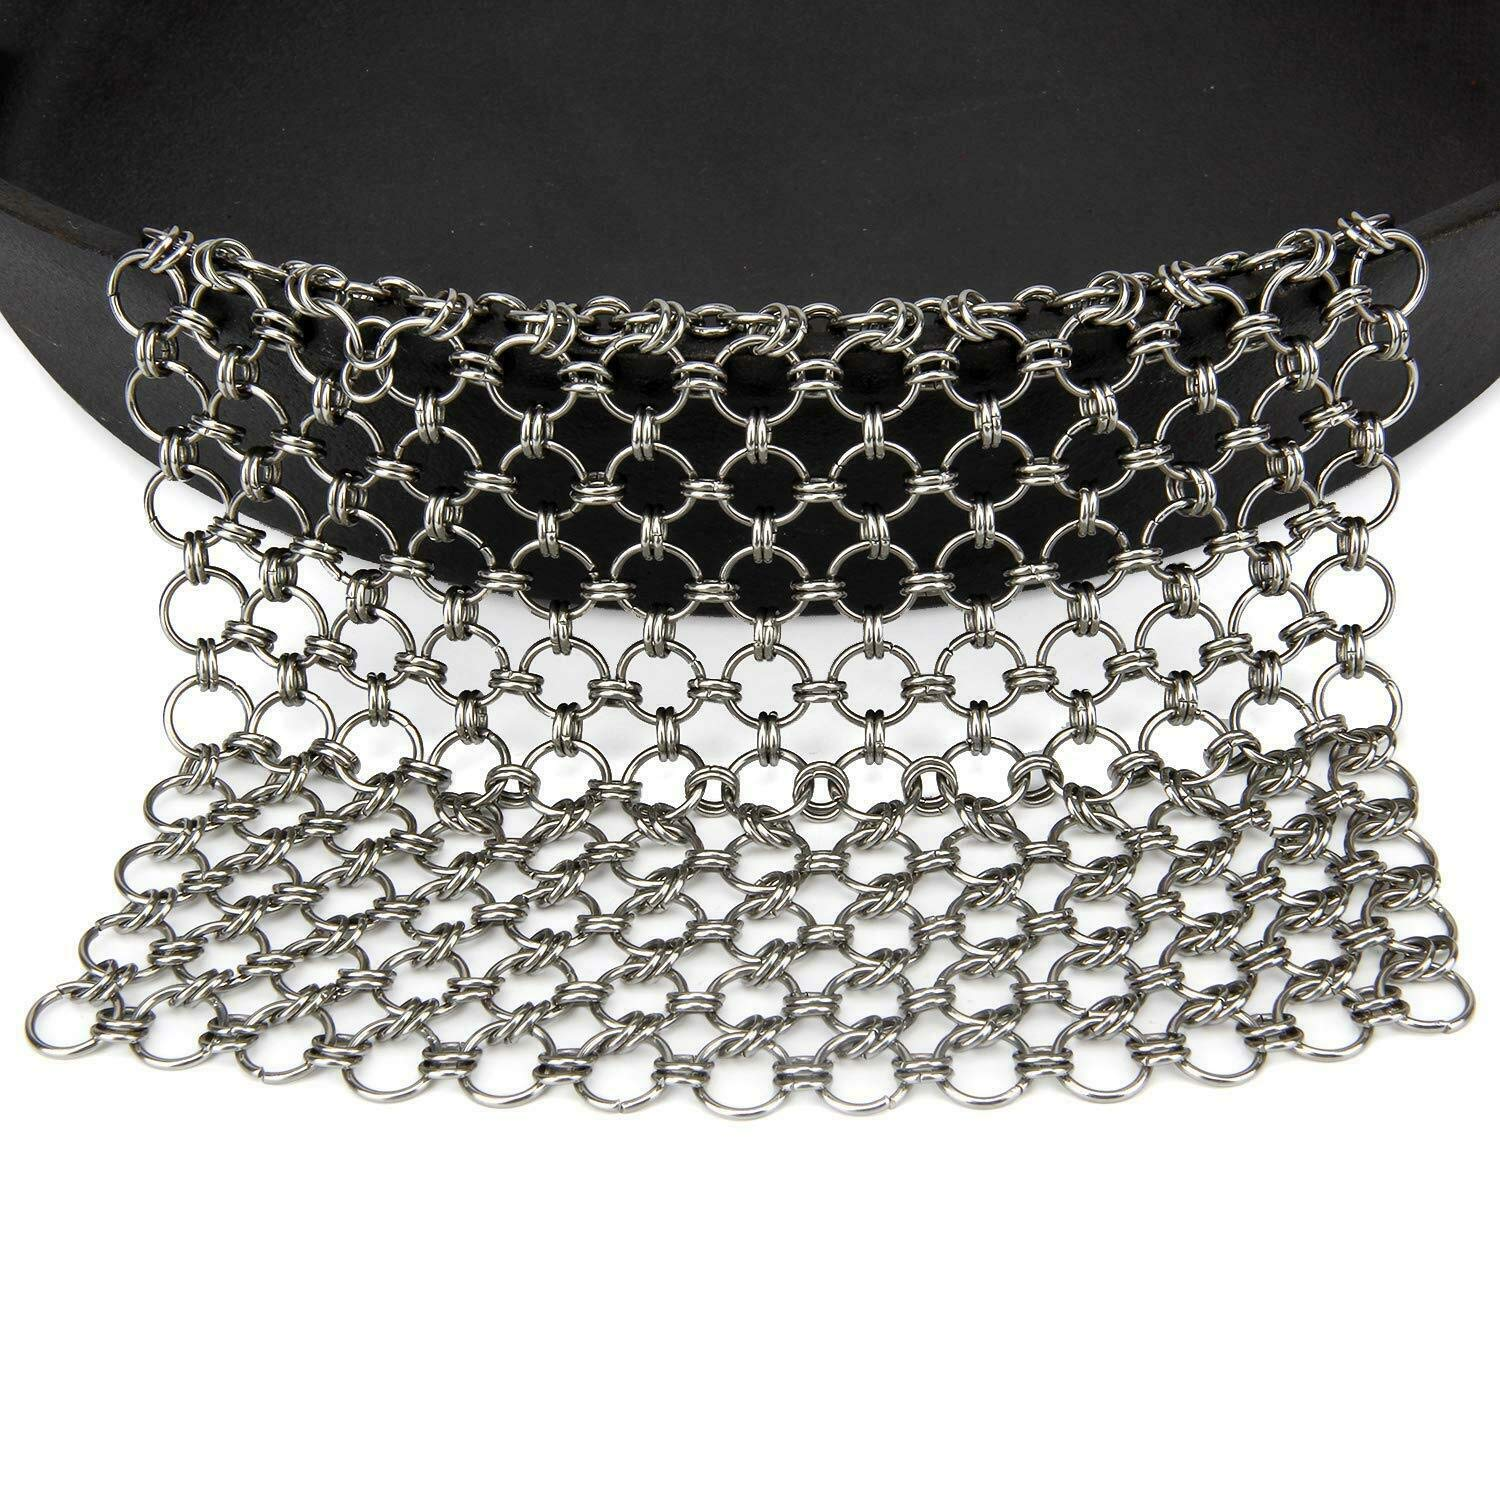 CHOee-Chen Cast Iron Cleaner, Stainless Steel Chainmail Scrubber for Cast Iron Pan Skillet Even Wok All Purpose Cleaner